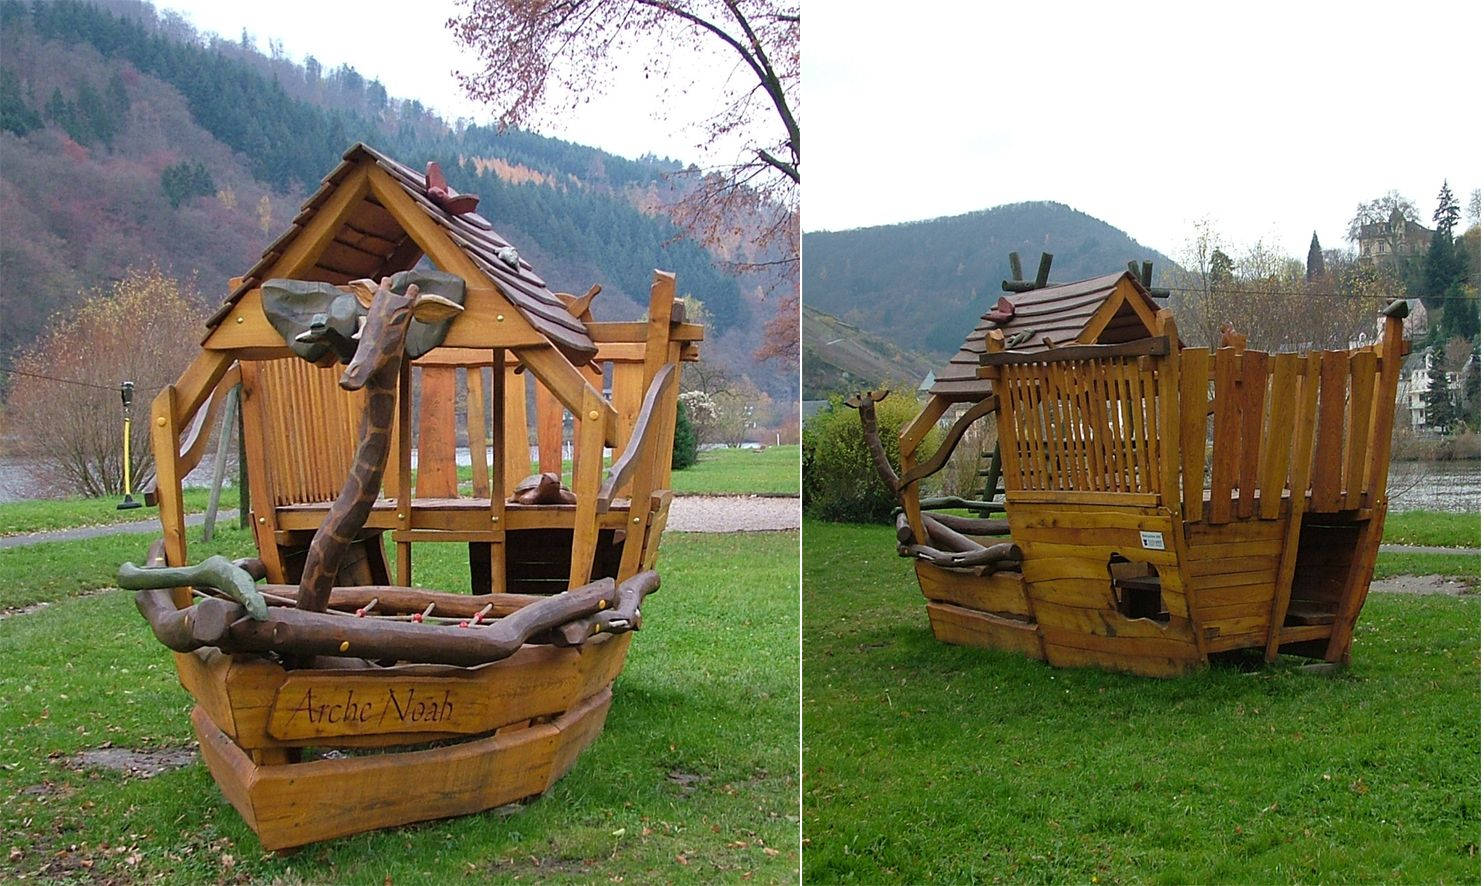 1000+ images about Noah's ark play sets on Pinterest | Noahs ark theme, Boats and Zoos